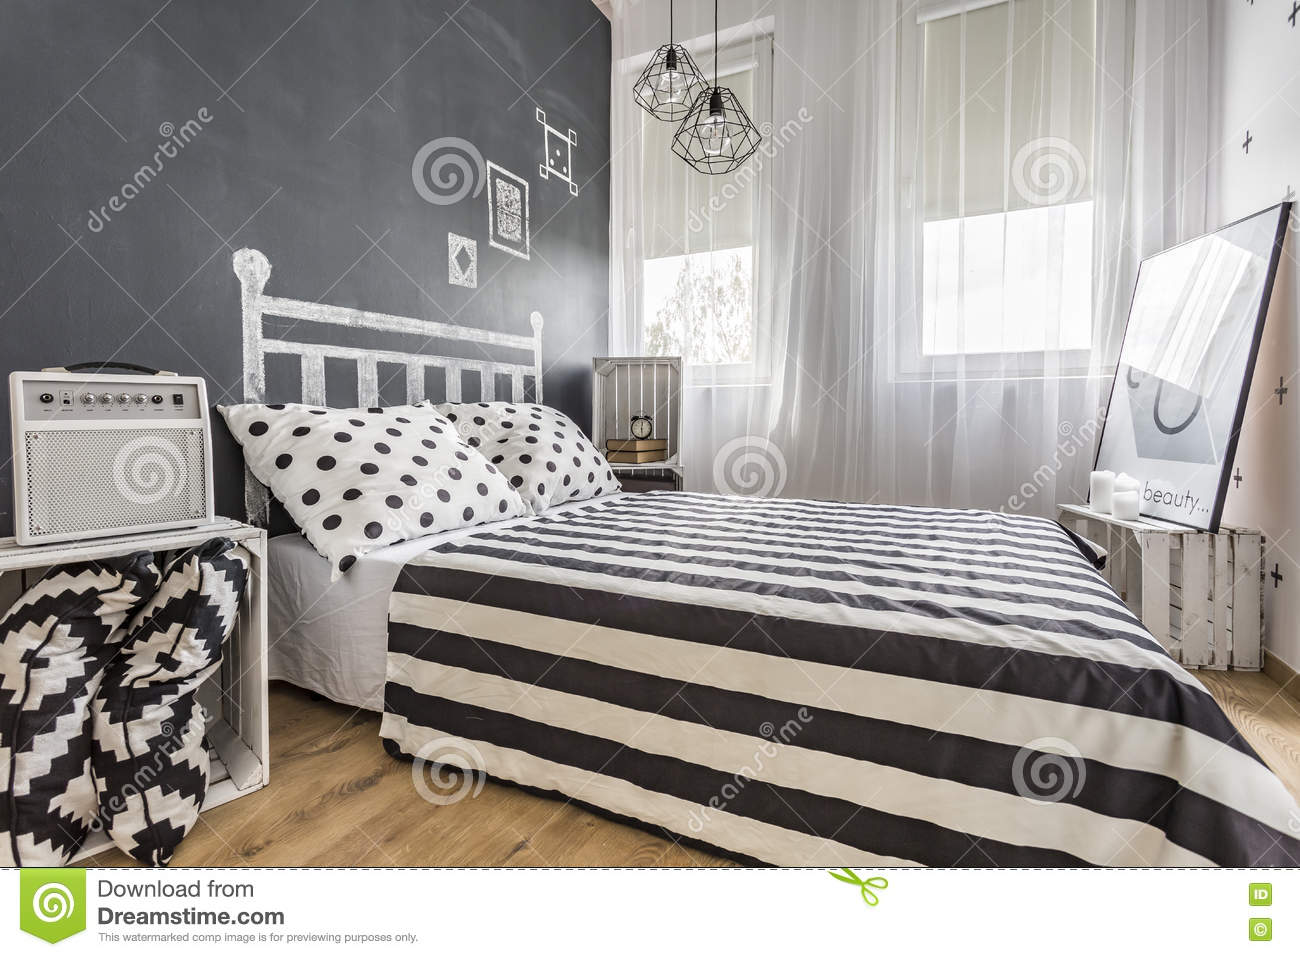 Bedroom With Chalkboard Wall Idea Stock Photo Image Of Single